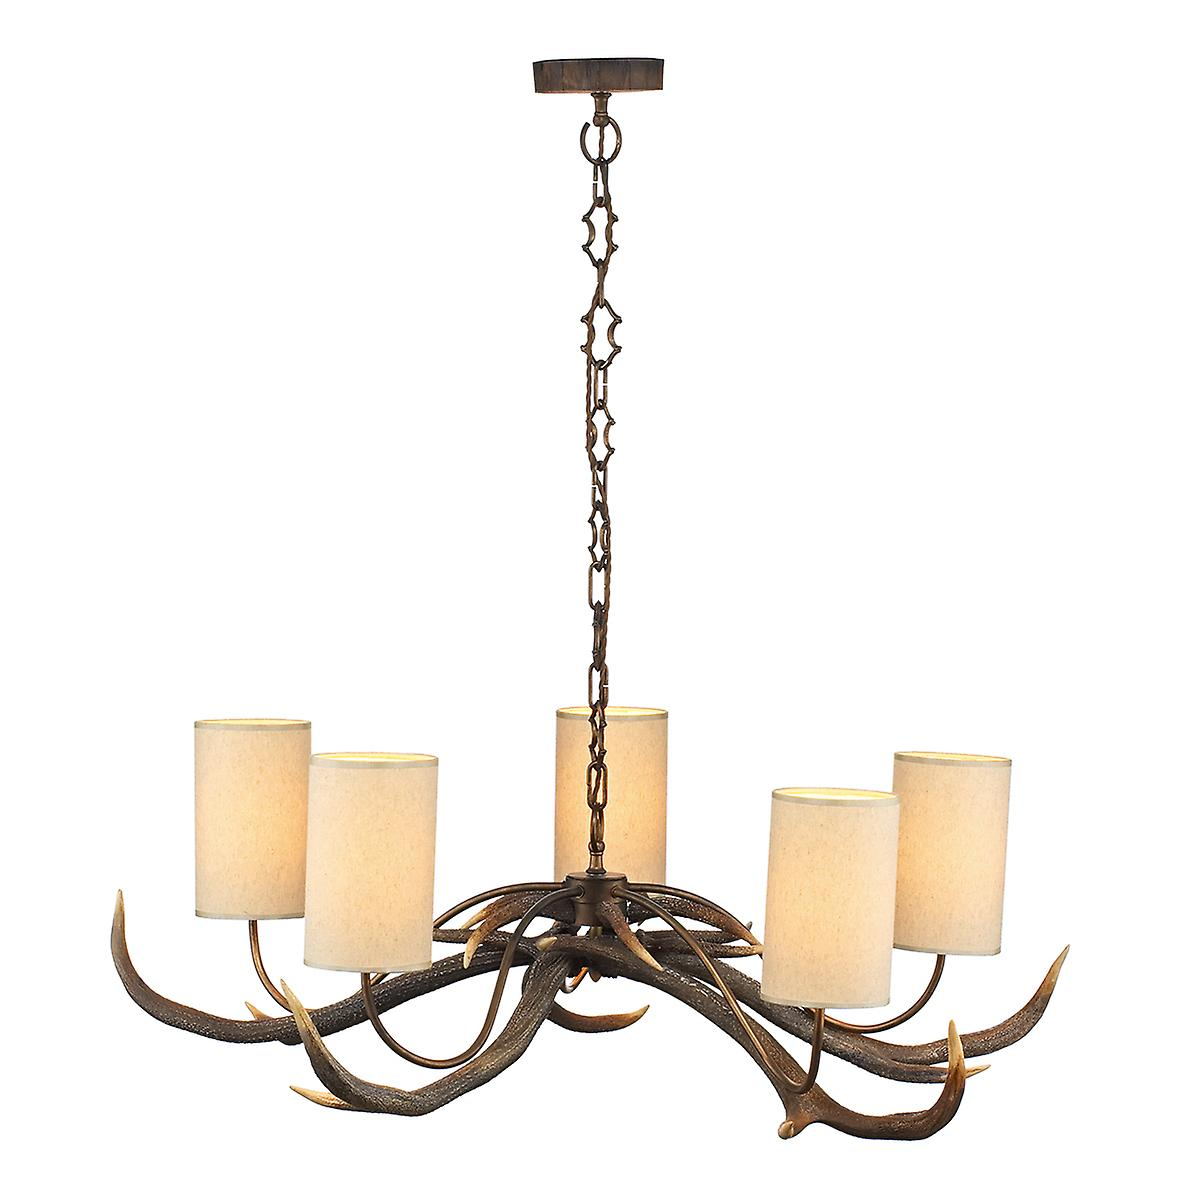 David Hunt ANT0529S Antler 5 Light Pendant In A Natural Rustic Finish - Shades Included